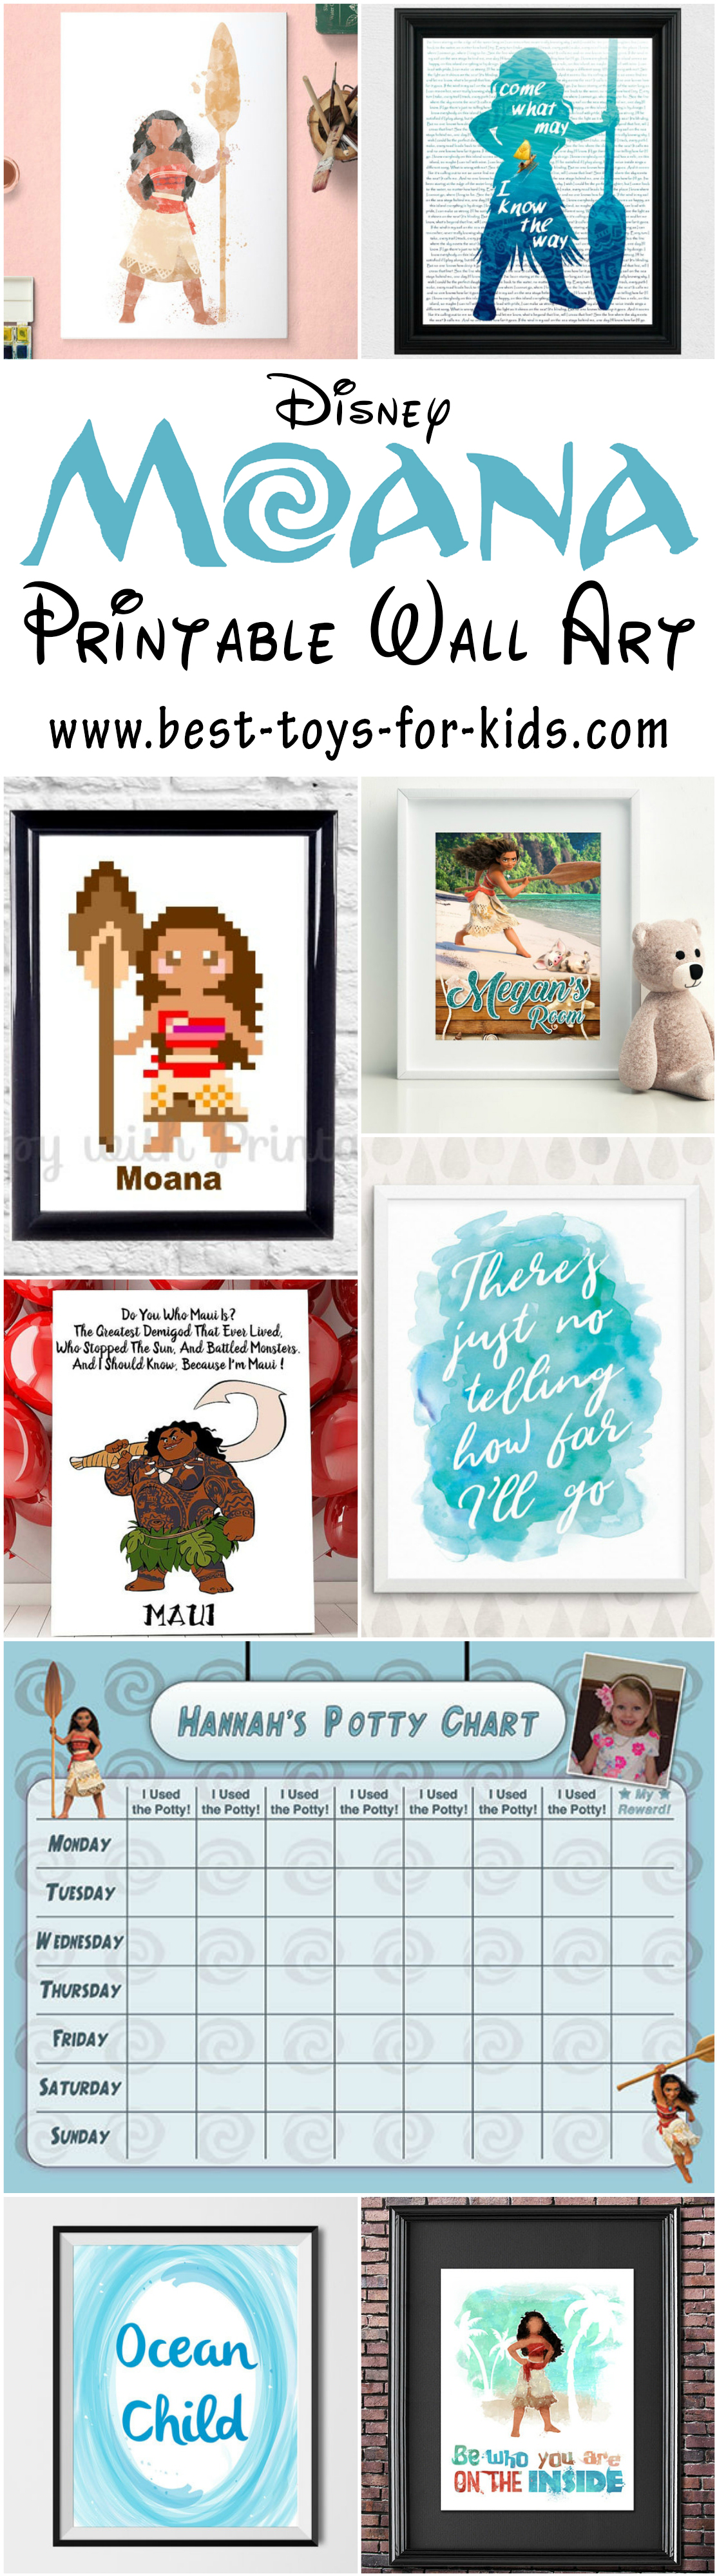 Disney Moana Printable Art Pictures And Wall Decor For Kids